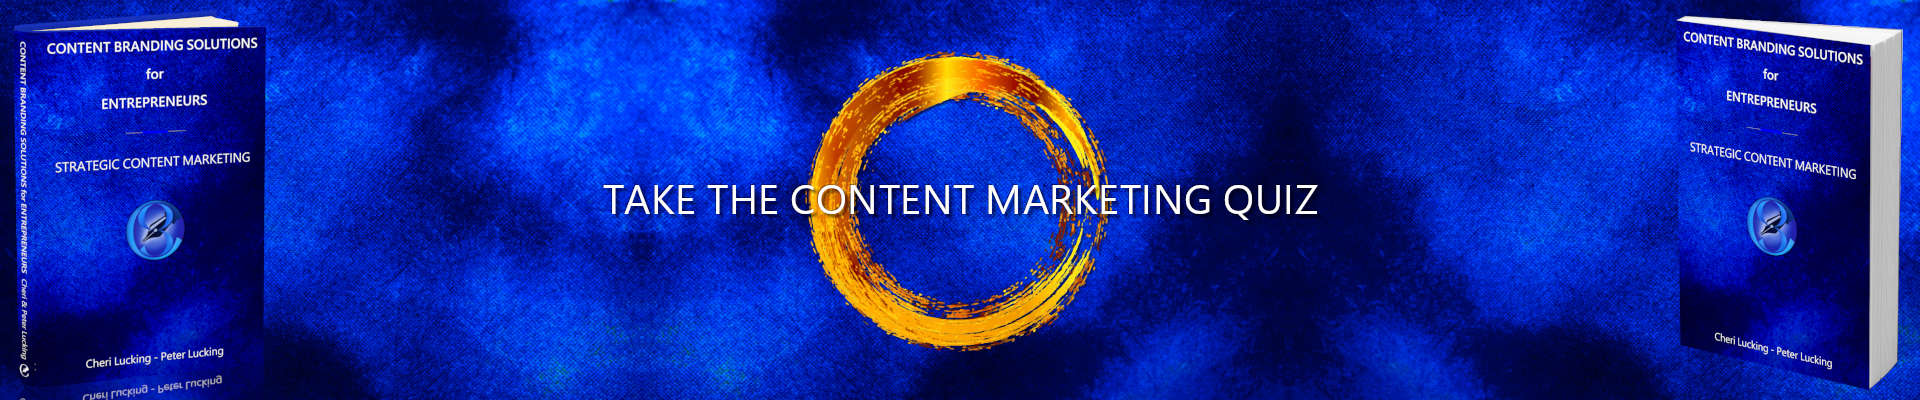 Take the Content Marketing Quiz from the book Content Branding Solutions for Entrepreneurs - Strategic Content Marketing is The A-To-Z Guide to Content Marketing by Cheri Lucking and Peter Lucking